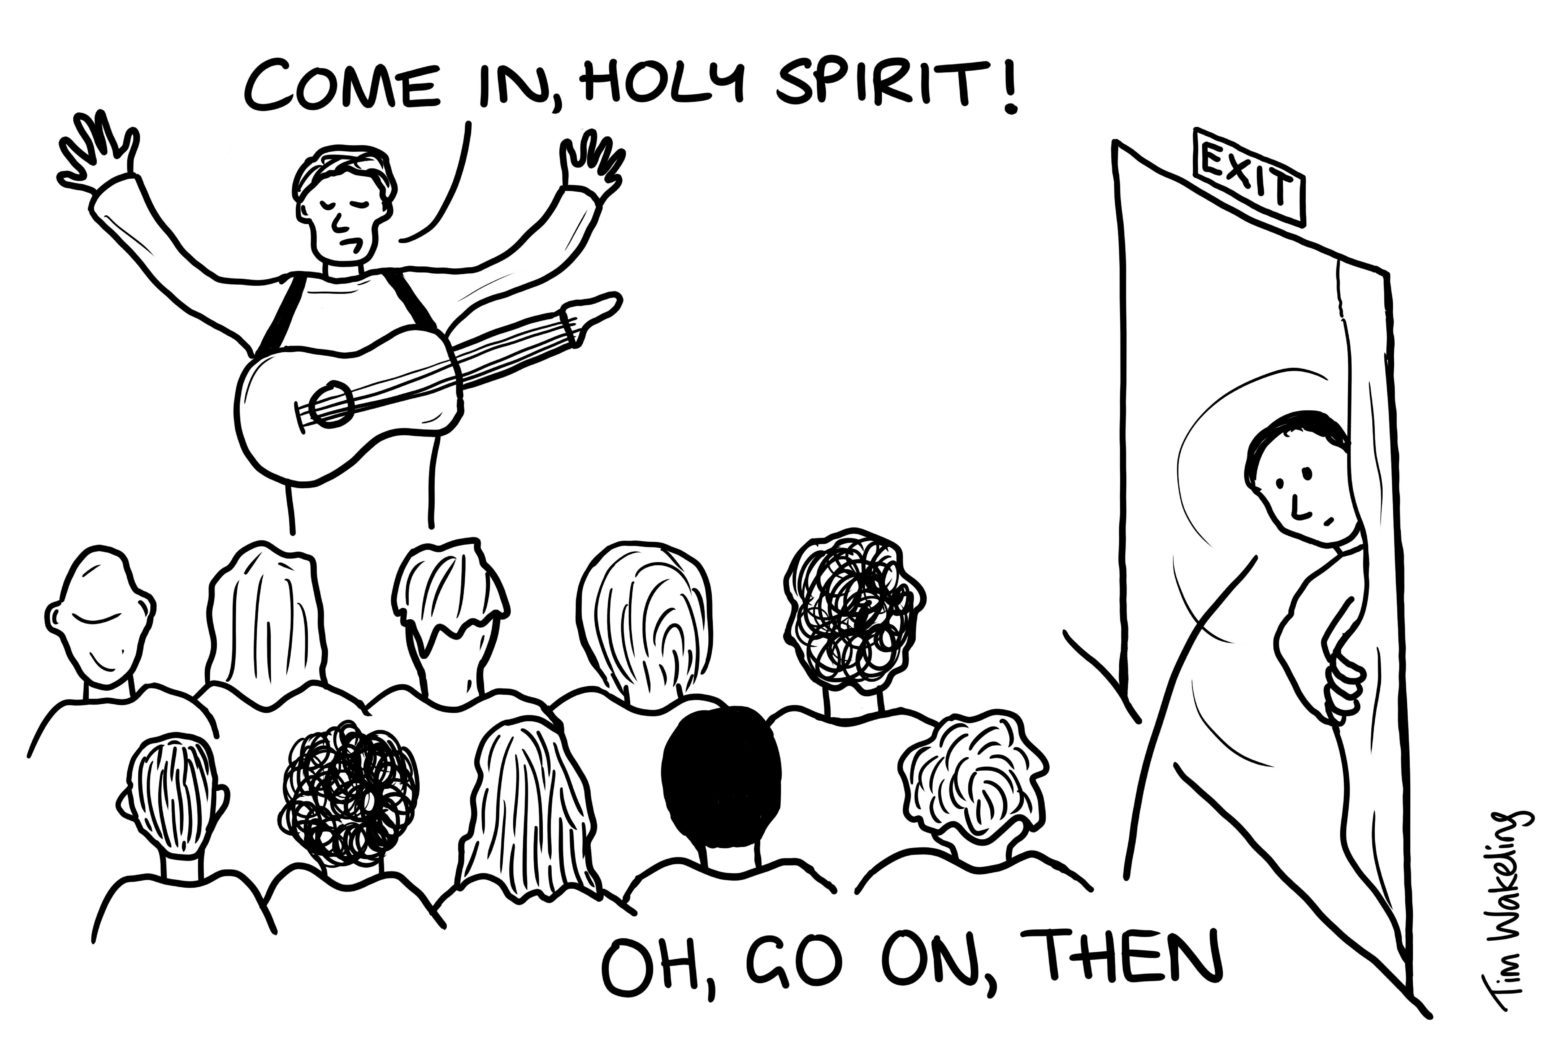 Come in, Holy Spirit